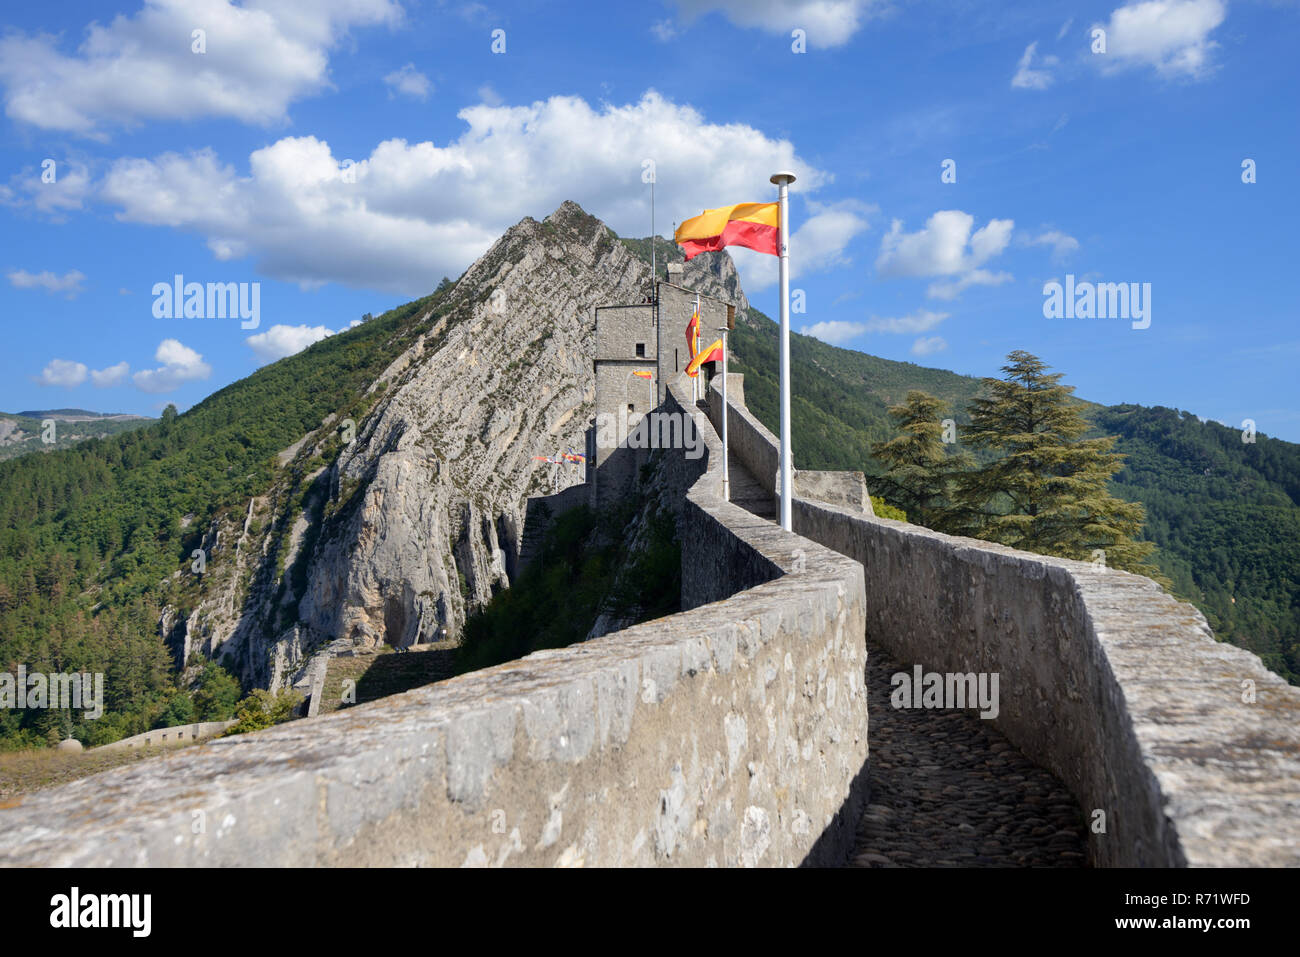 Upper Rampart & Elevated Protected Walkway of the Medieval Citadel, Fort, Fortress or Castle Sisteron Alpes-de-Haute-Provence Provence France - Stock Image